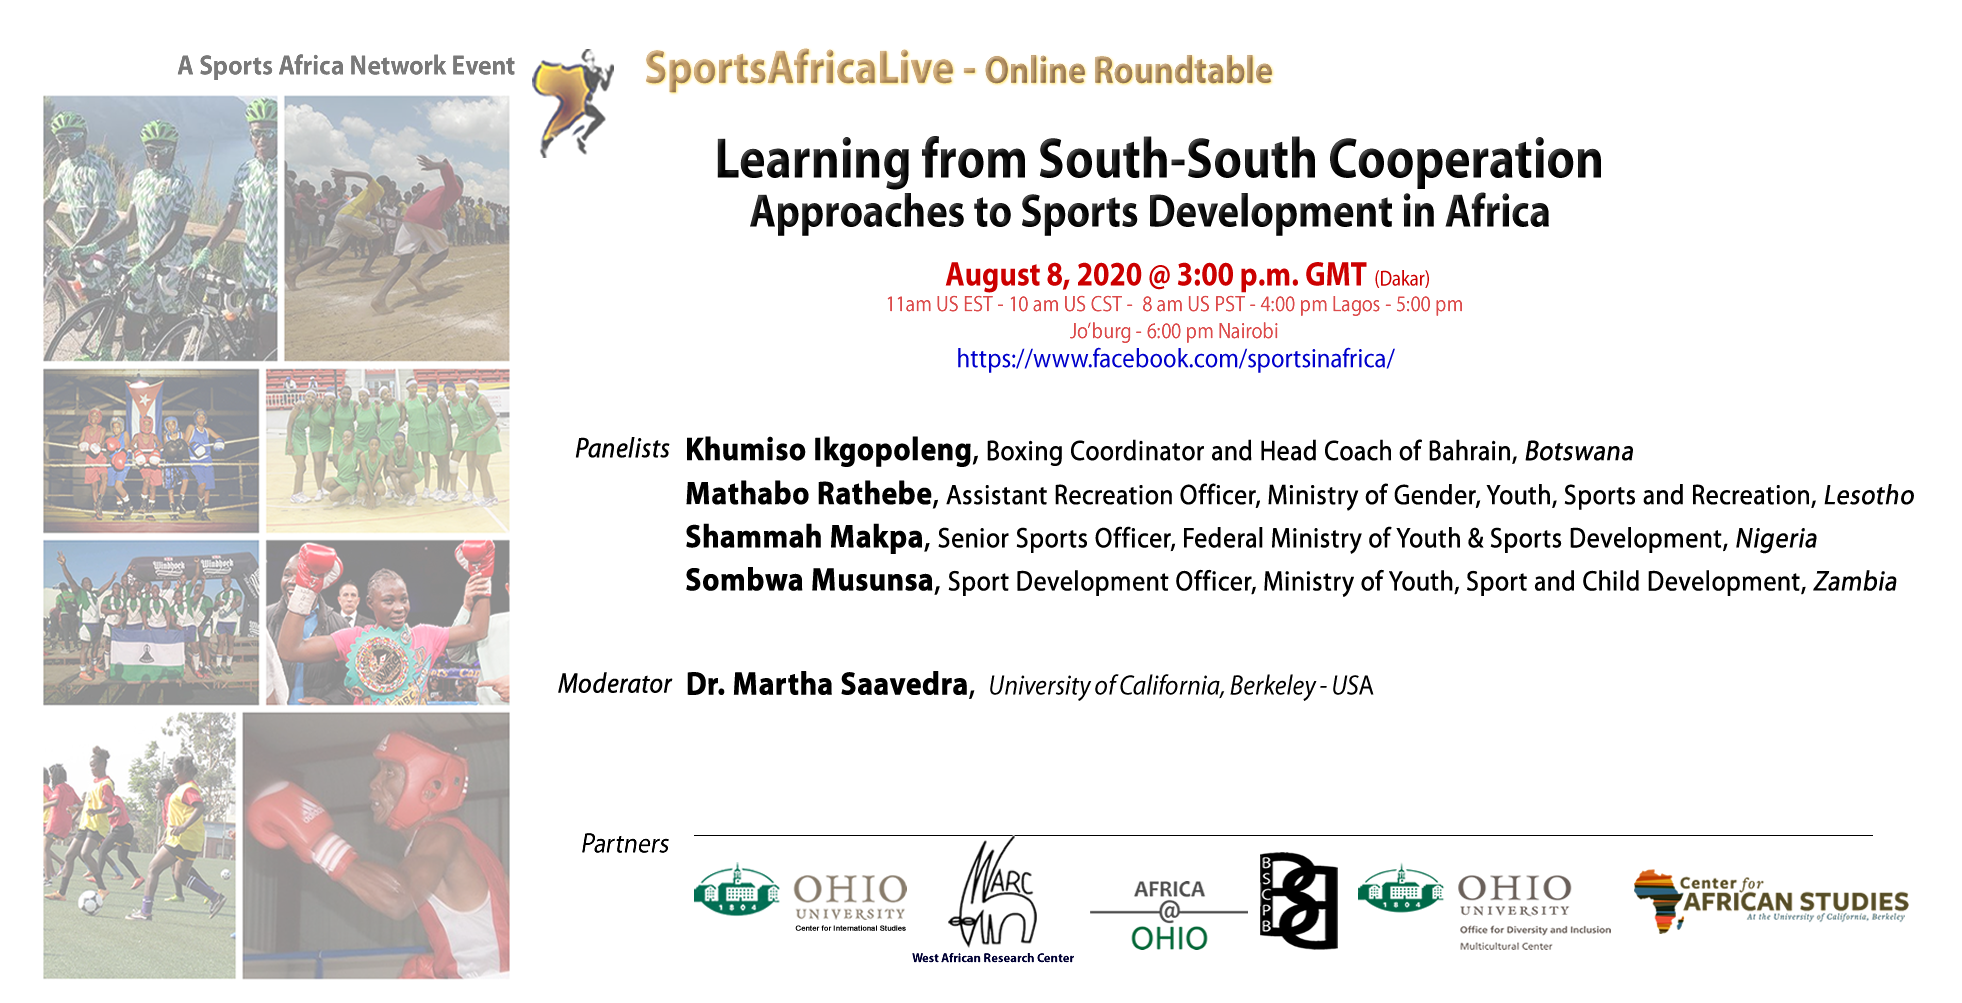 Learning from South-South Cooperation: Approaches to sports development in Africa